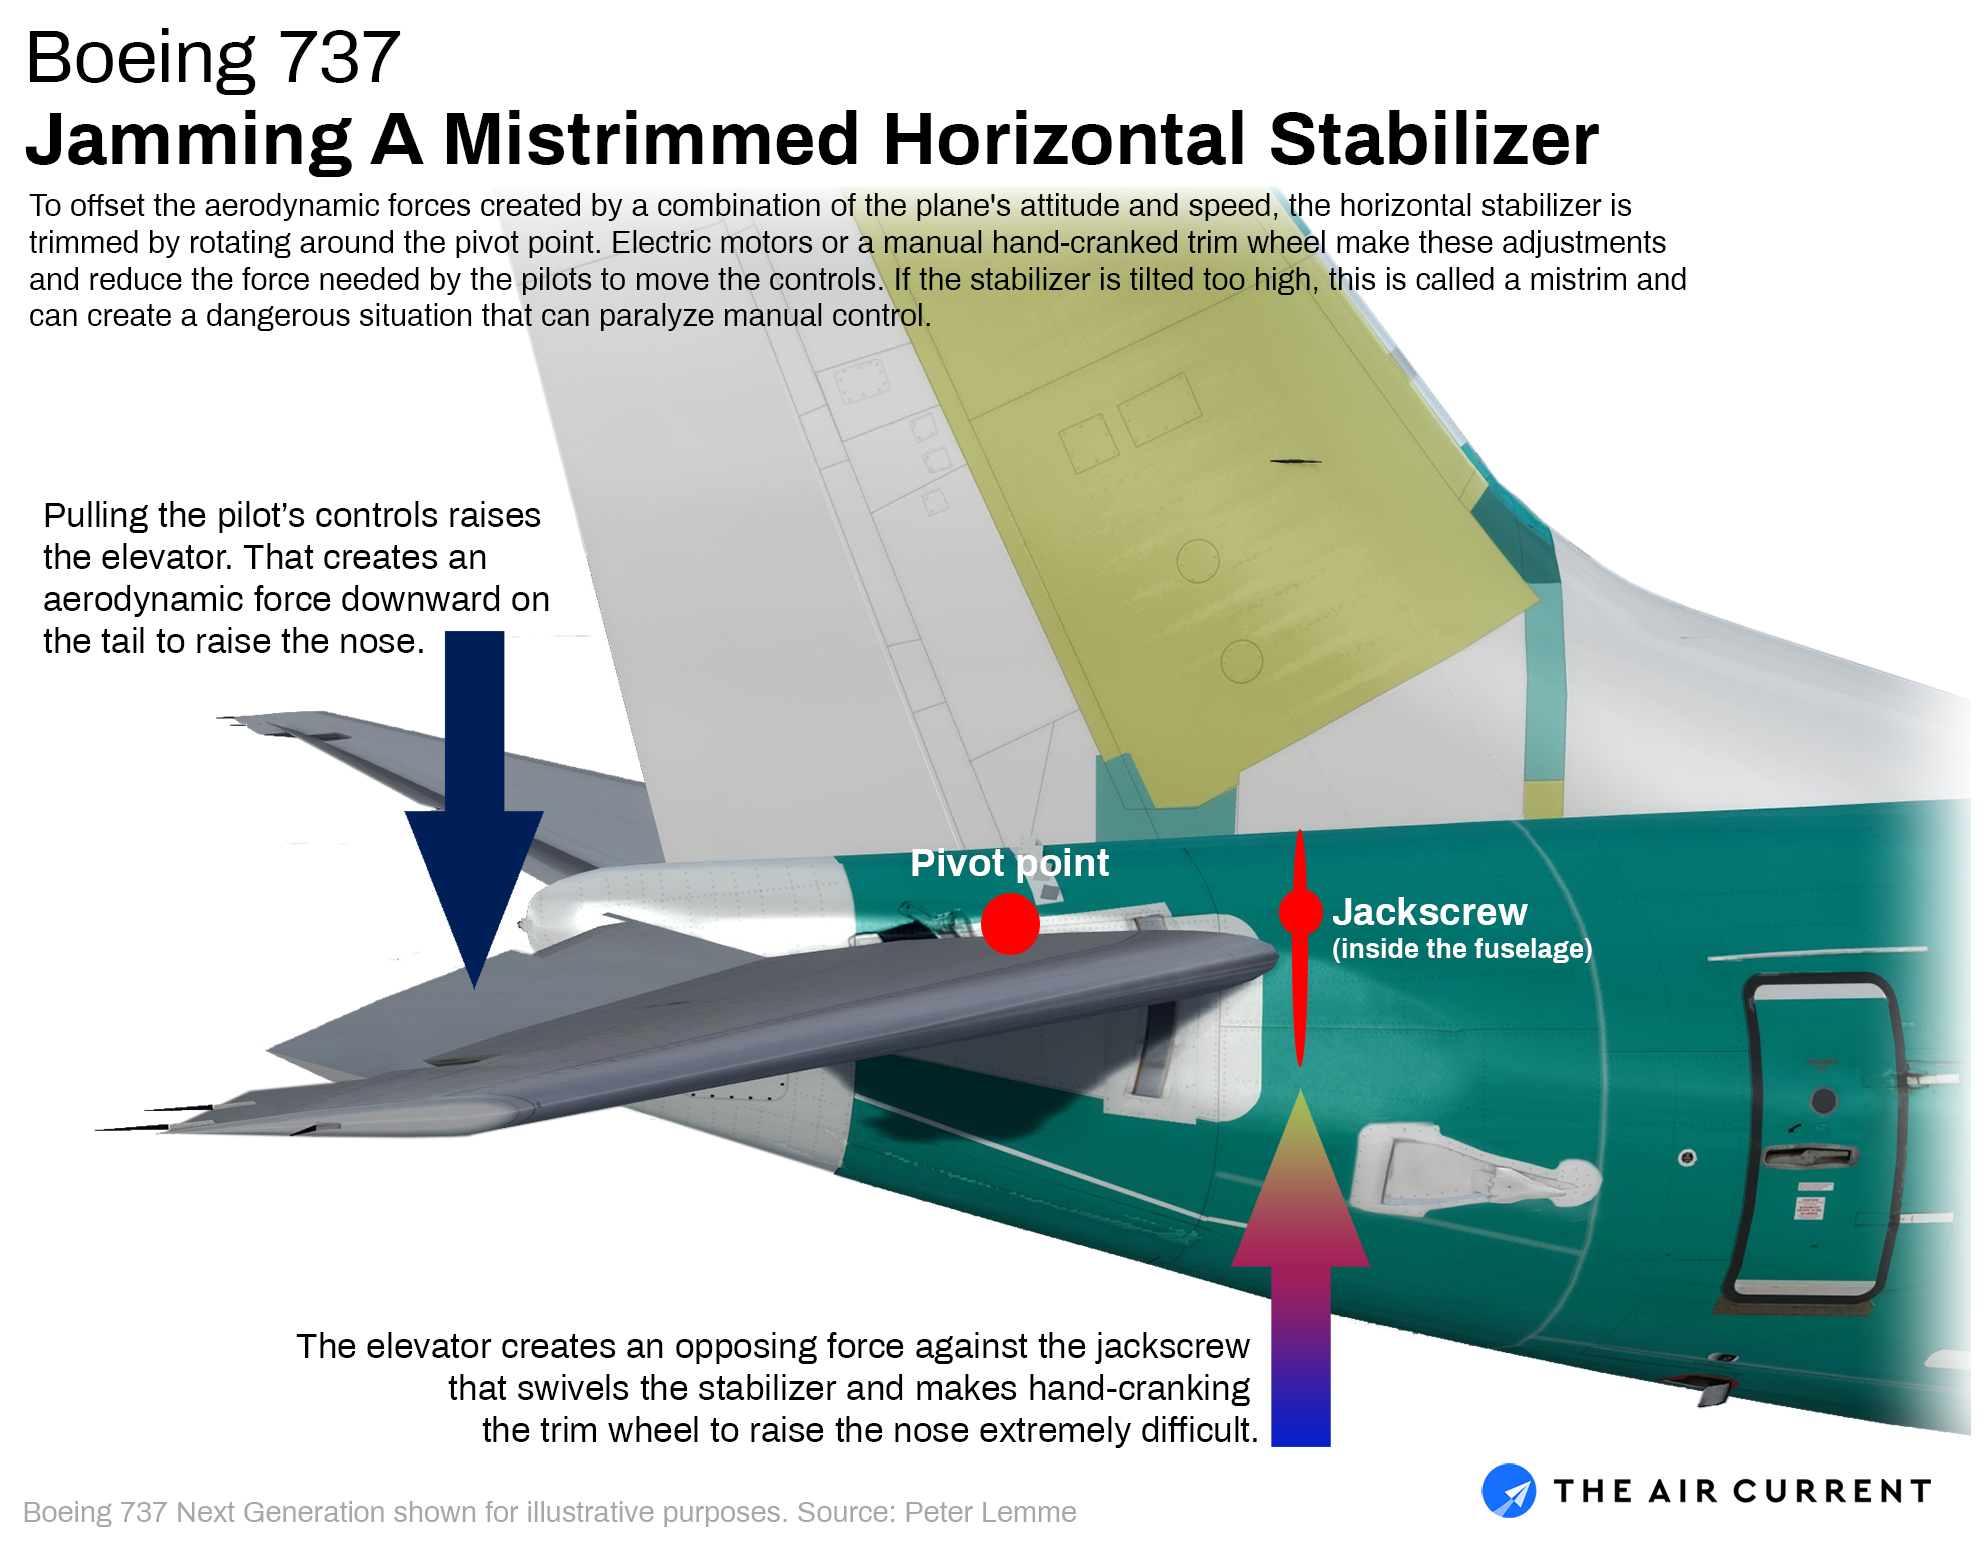 Vestigial design issue clouds 737 Max crash investigations